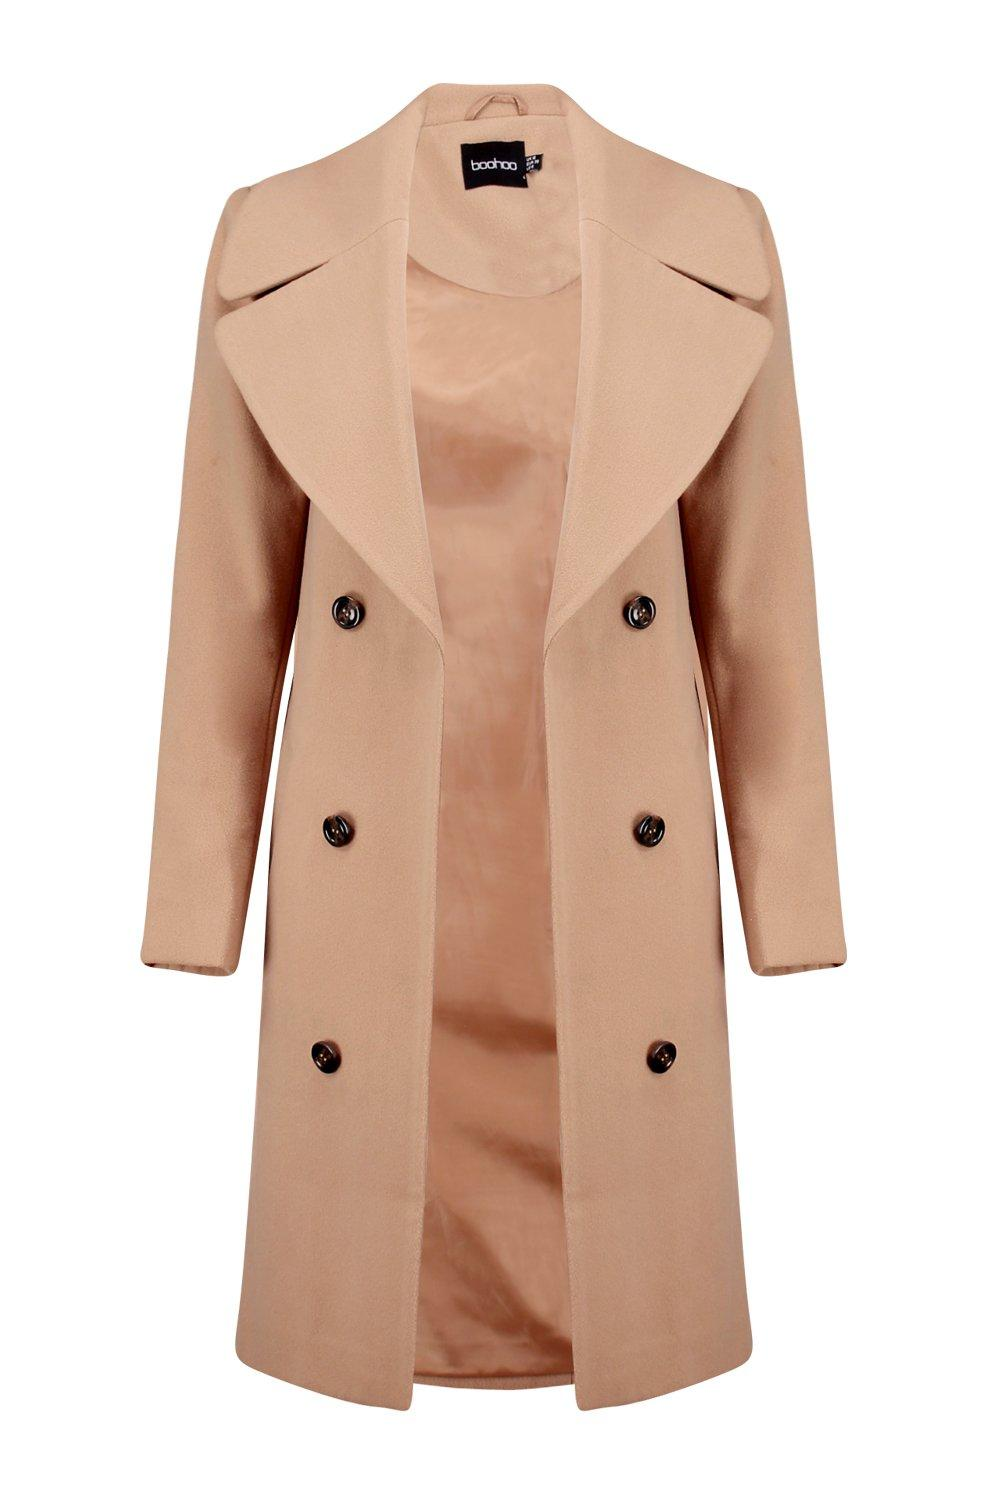 NEW-Boohoo-Womens-Maya-Oversized-Collar-Double-Breasted-Coat-in-Polyester